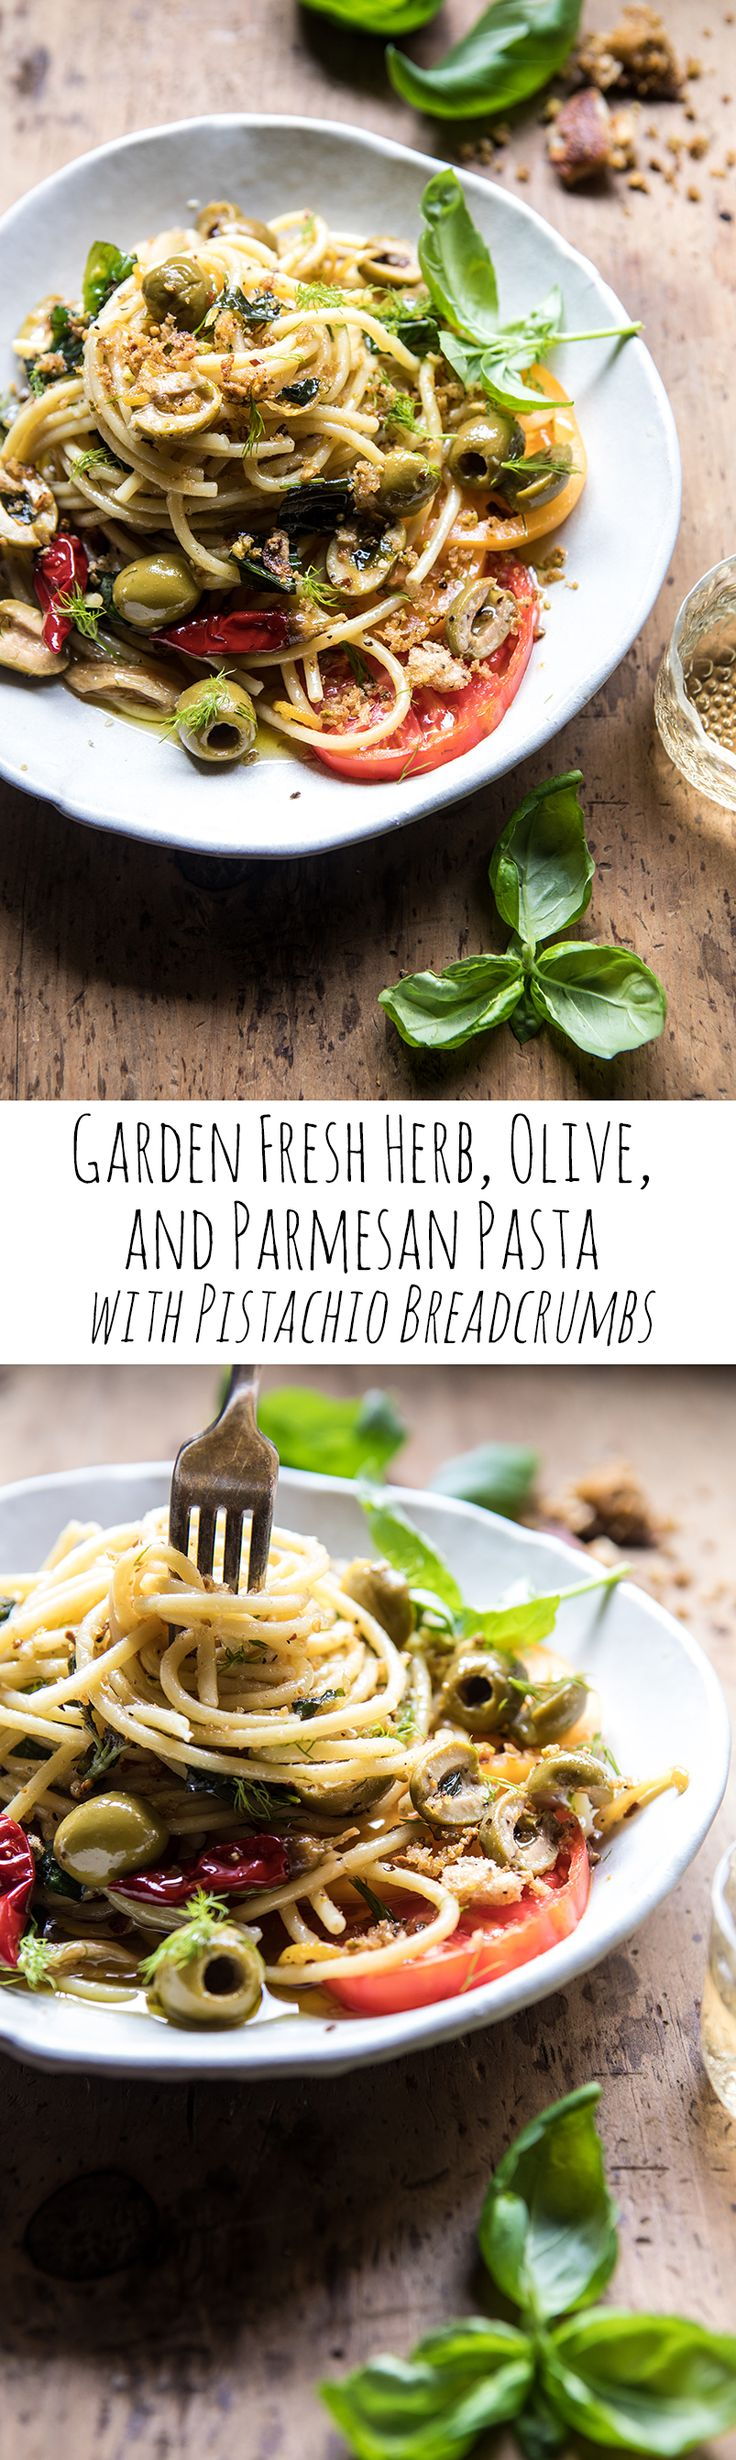 Garden Fresh Herb, Olive, and Parmesan Pasta with Pistachio Breadcrumbs | halfbakedharvest.com @hbharvest